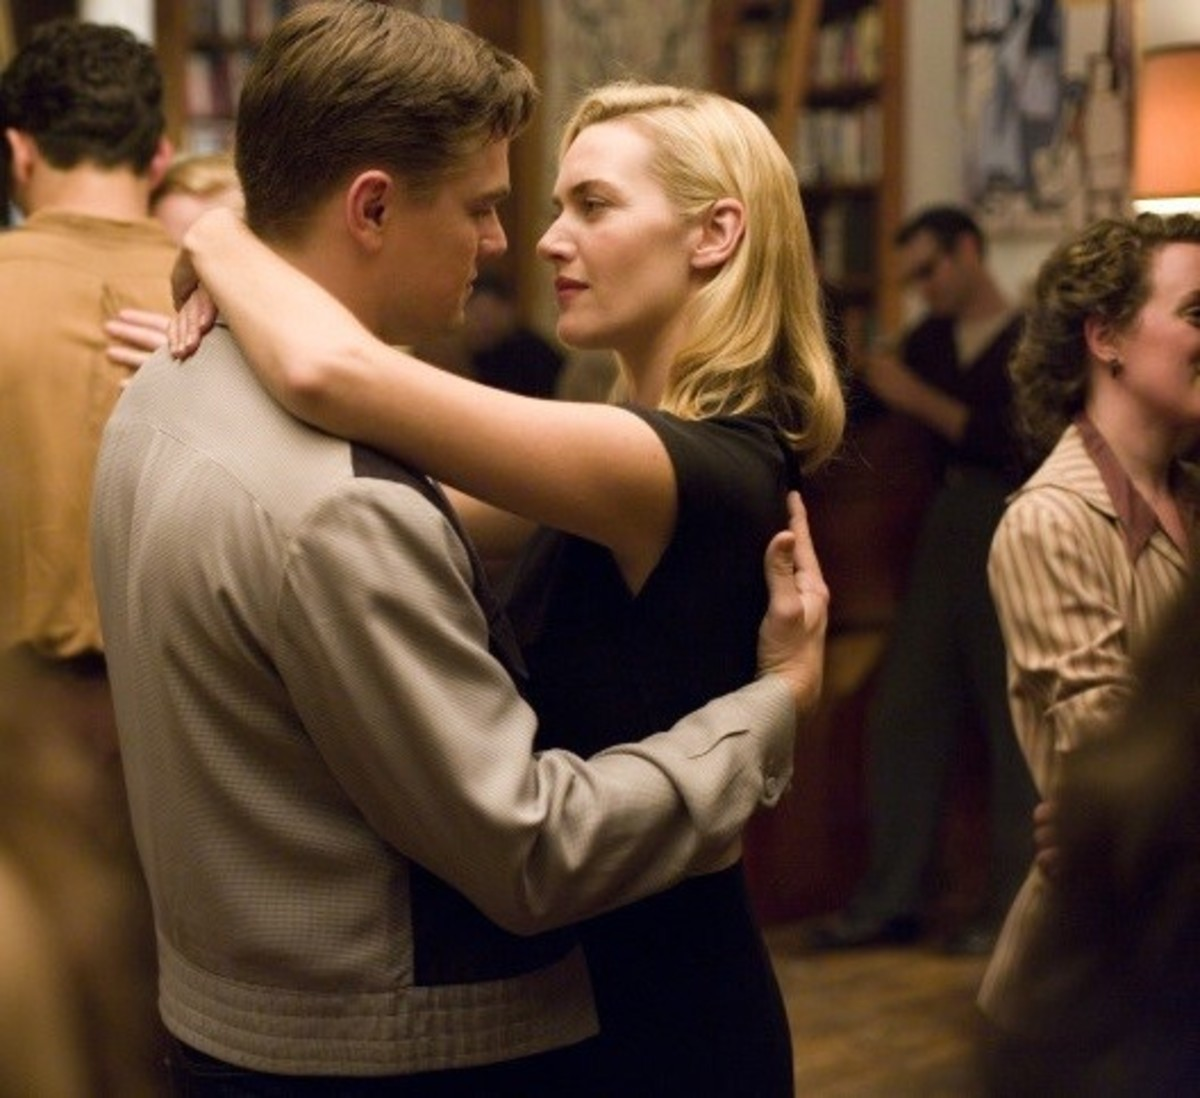 39 Movies That Will Break Your Heart